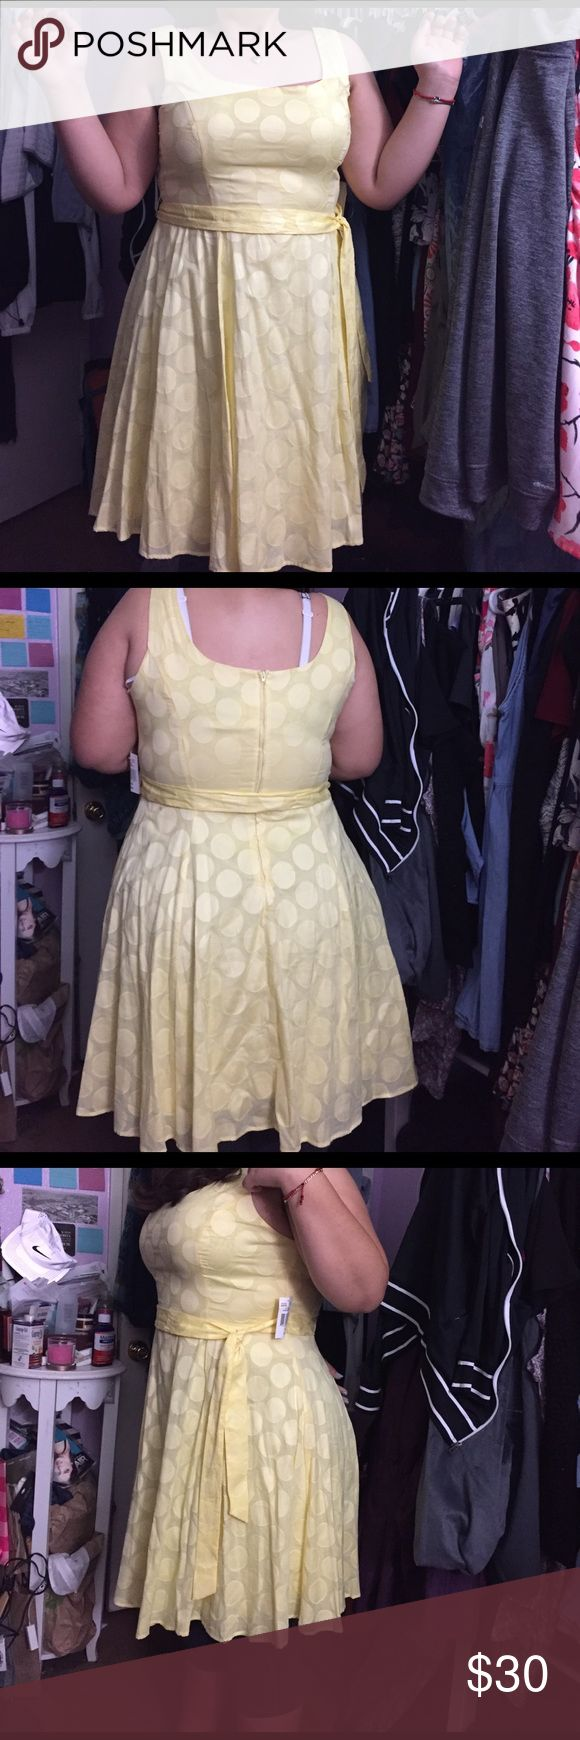 Yellow polka dot sundress NWT B. smart Yellow polka dot sundress with sash. Size 16, laying flat it's 22 inches armpit to armpit with an inch or two of stretch. It's 40 inches long, 100% cotton and lining is 100% polyester. Super cute spring/summer dress. It no longer fits me at the bust 😭 and my sister is not a big fan of dresses. B. Smart Dresses